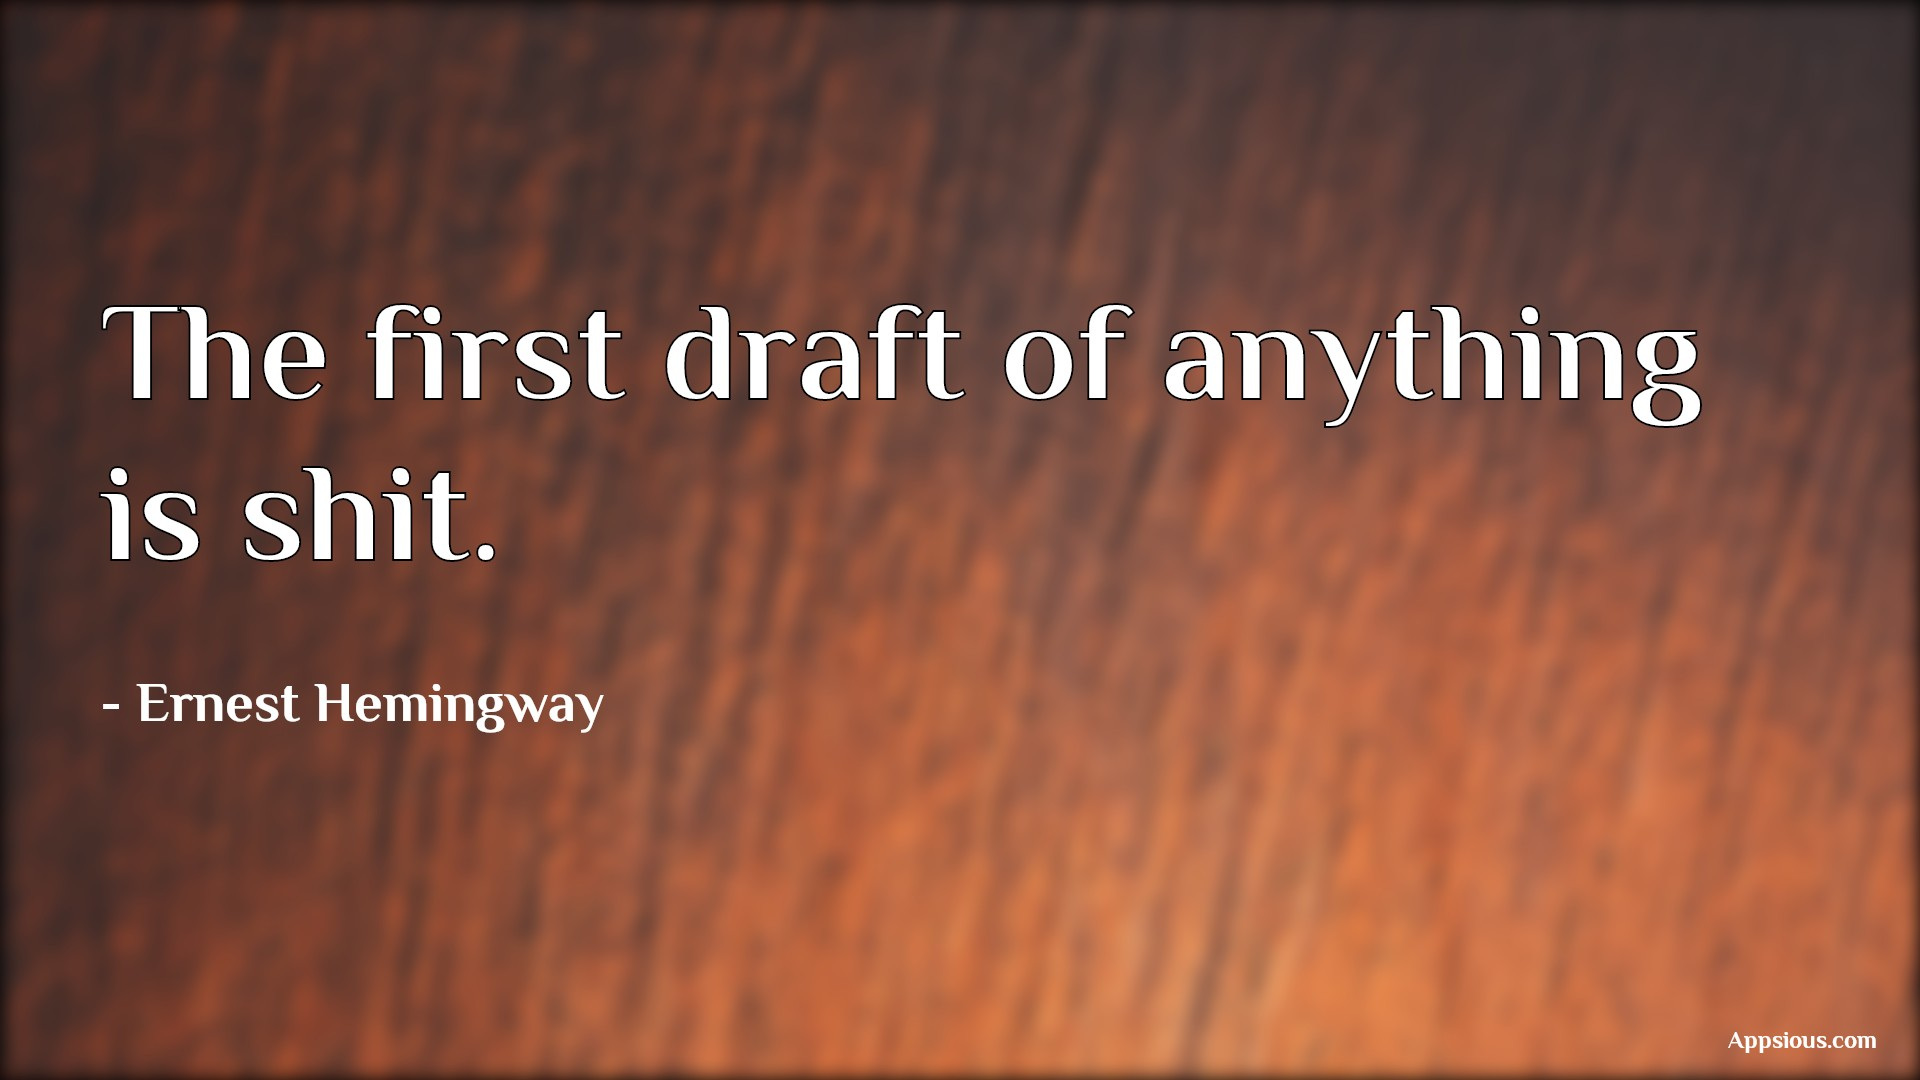 The first draft of anything is shit.